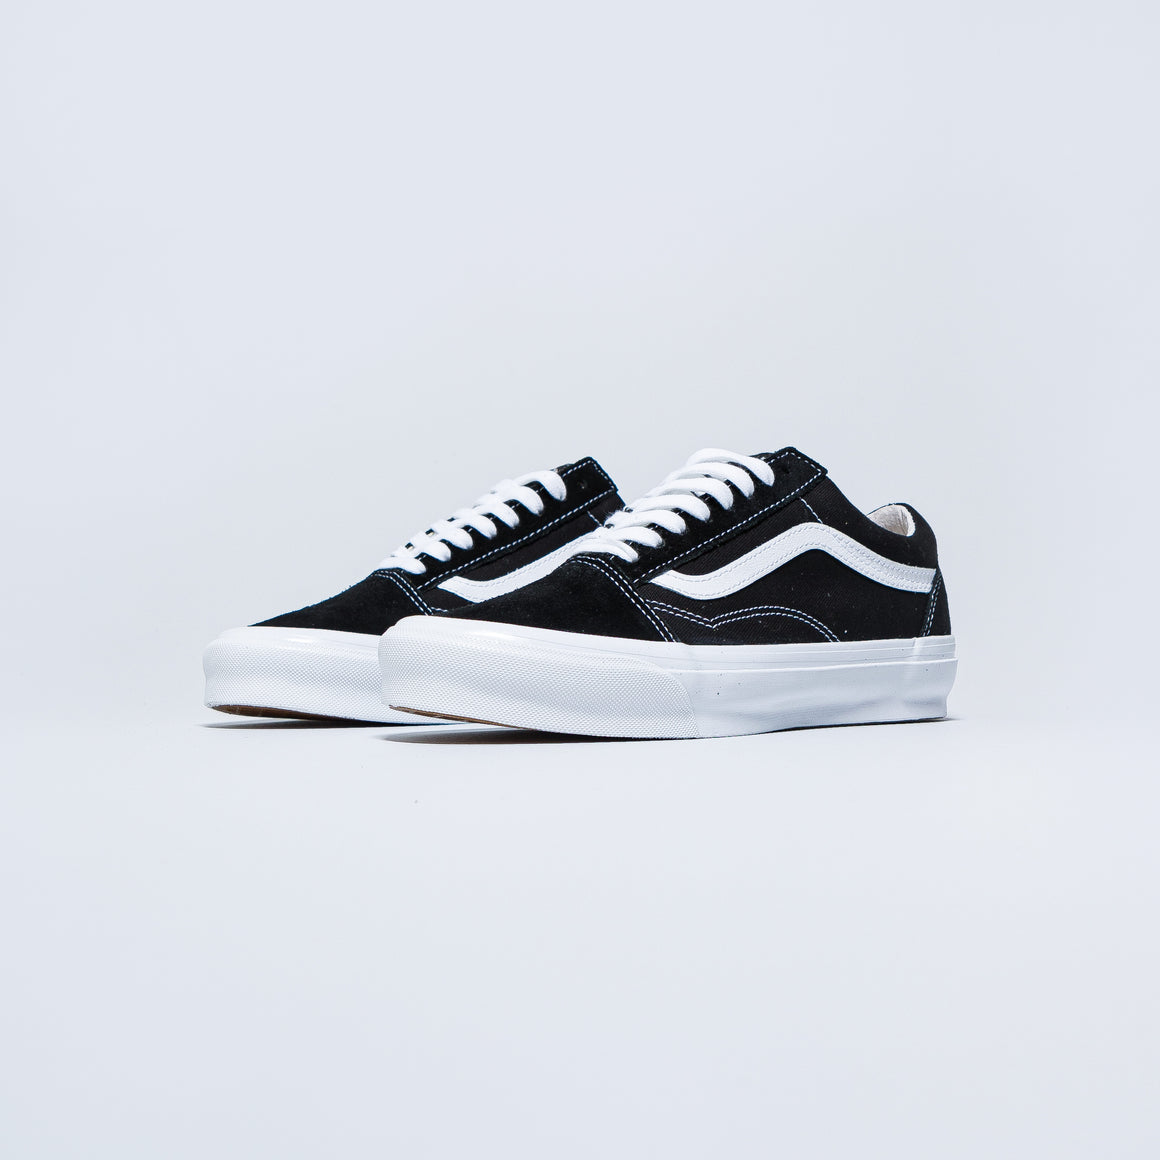 Vans - OG Old Skool LX - Black/True White - Up There